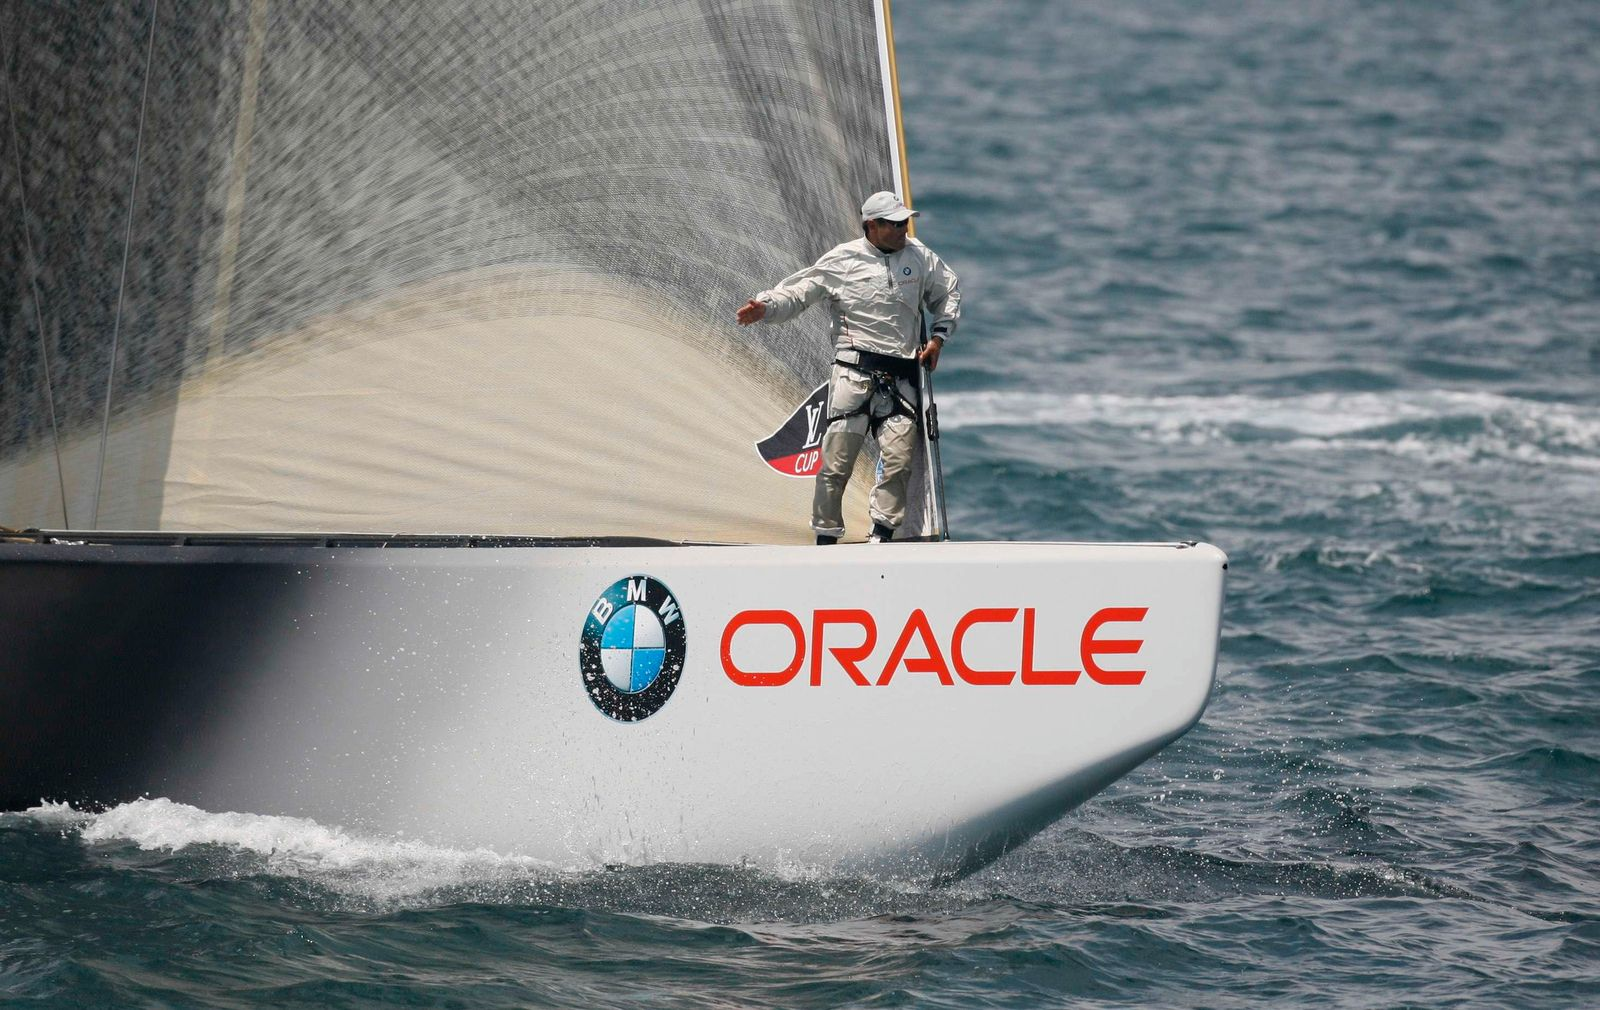 Bowman of America's Cup Challenger BMW Oracle Racing of the U.S. signals during the pre-start of their semi-final Race 4 at the Louis Vuitton Cup in Valencia